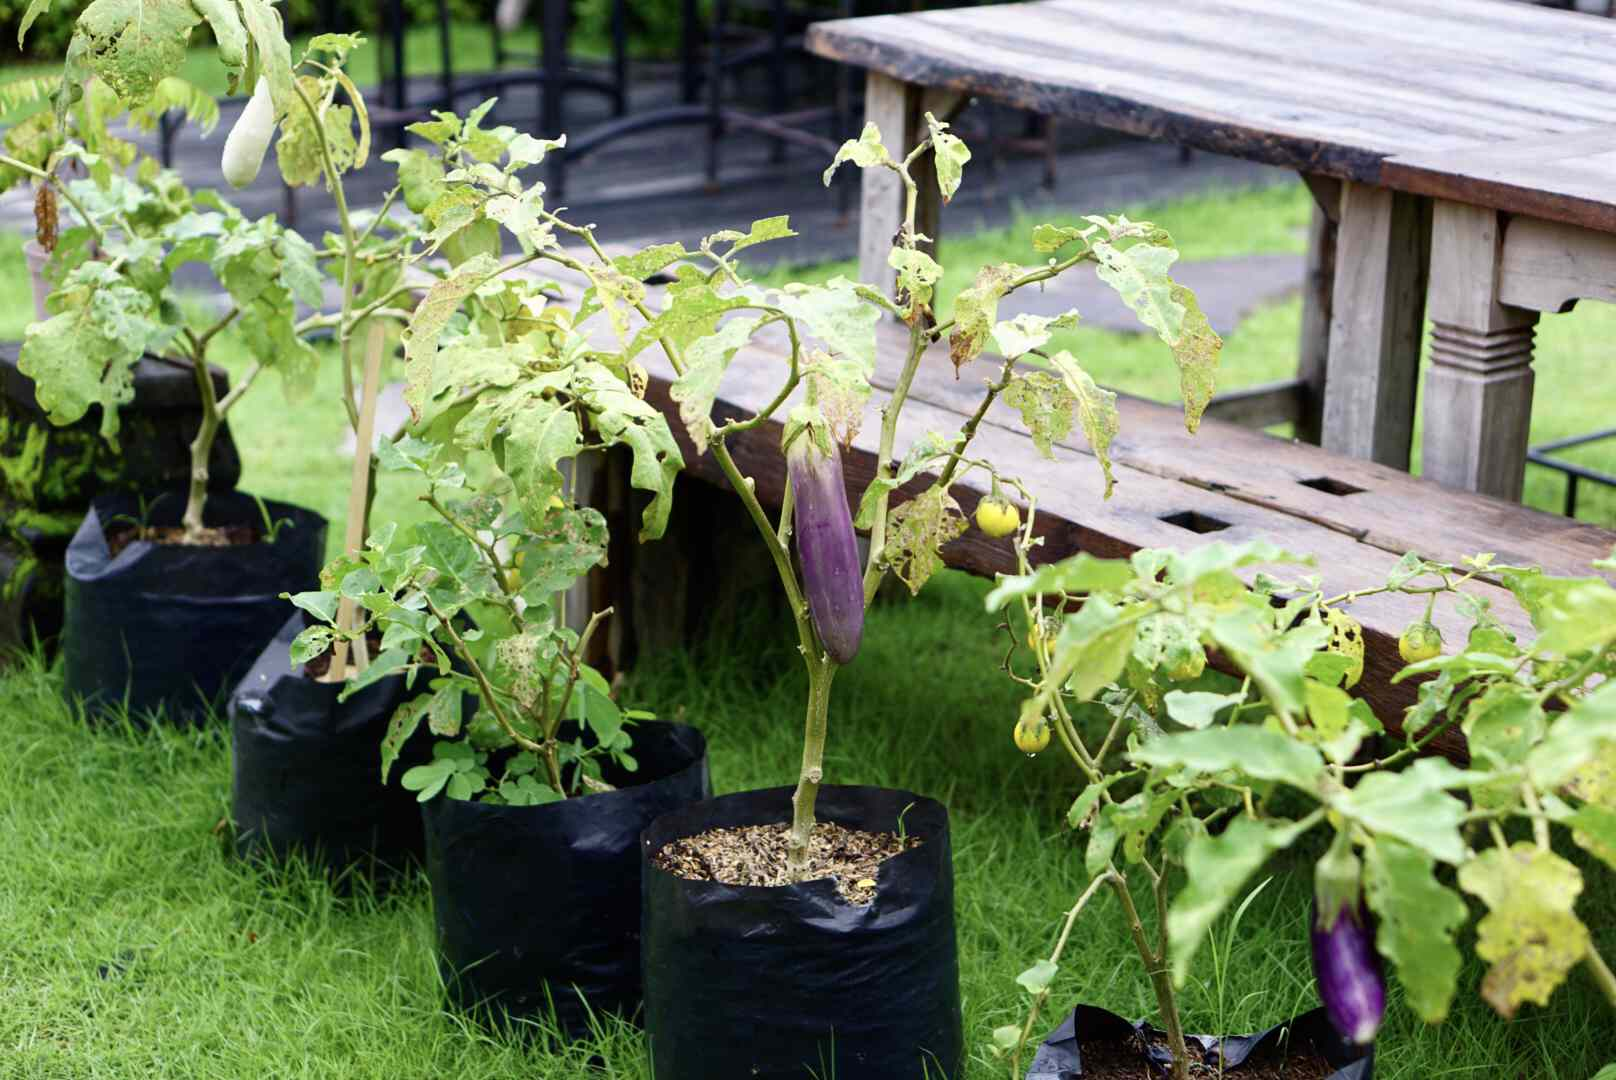 Eggplant tree growing in black container with small purple eggplant hanging